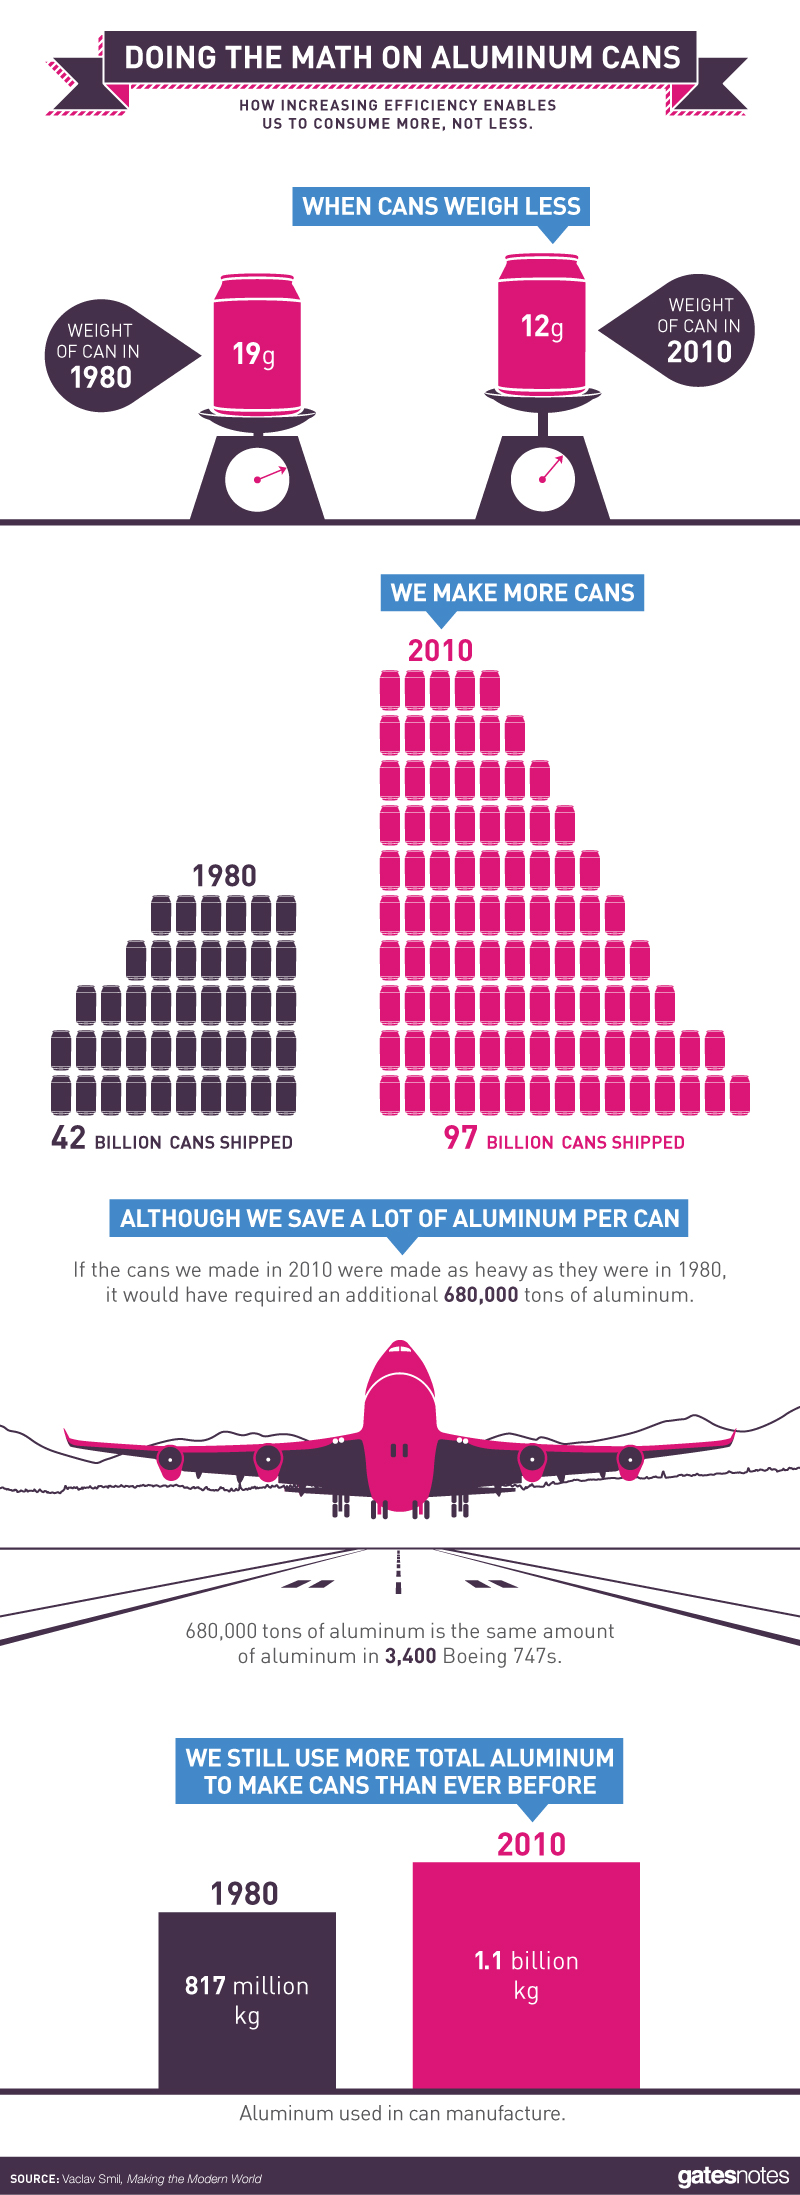 Infographic: How Much Aluminum Can Be Saved in Redesigning Soda Cans? - Making the Modern World by Vaclav Smil, Book Review | GatesNotes.com The Blog of Bill Gates